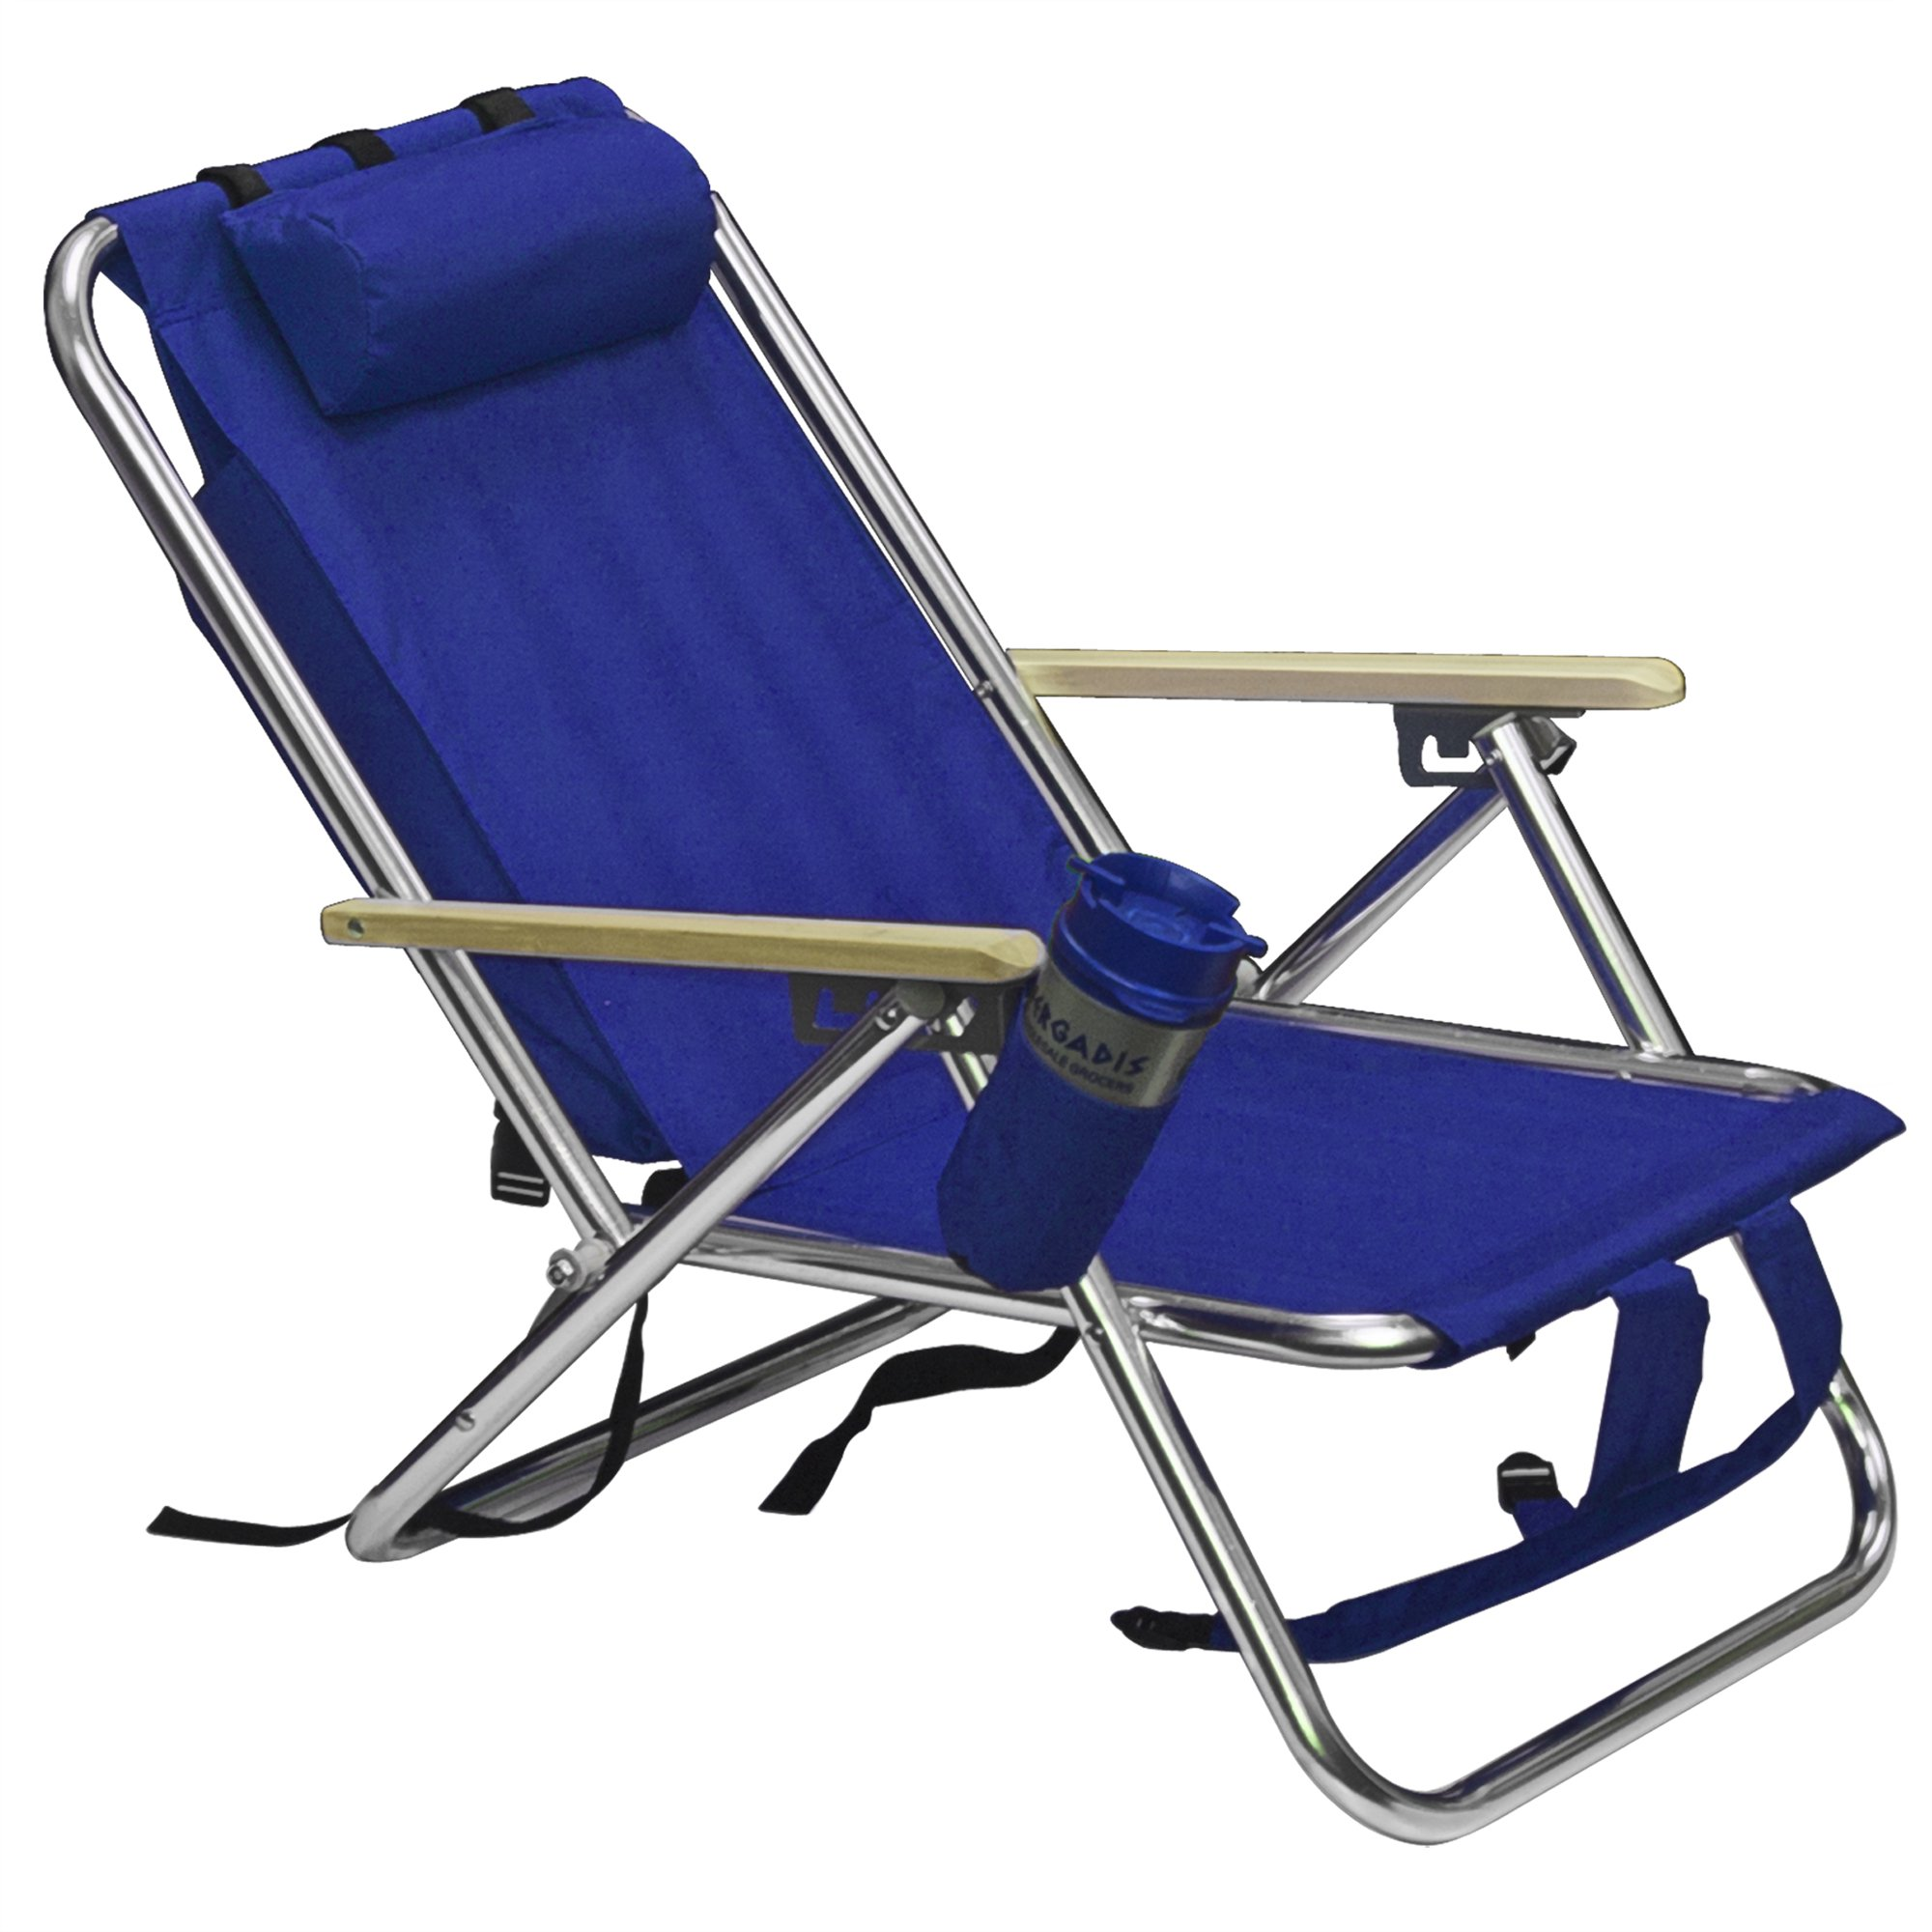 Best Choice Products Backpack Beach Chair Folding Portable Chair Solid  Construction Camping New   Blue